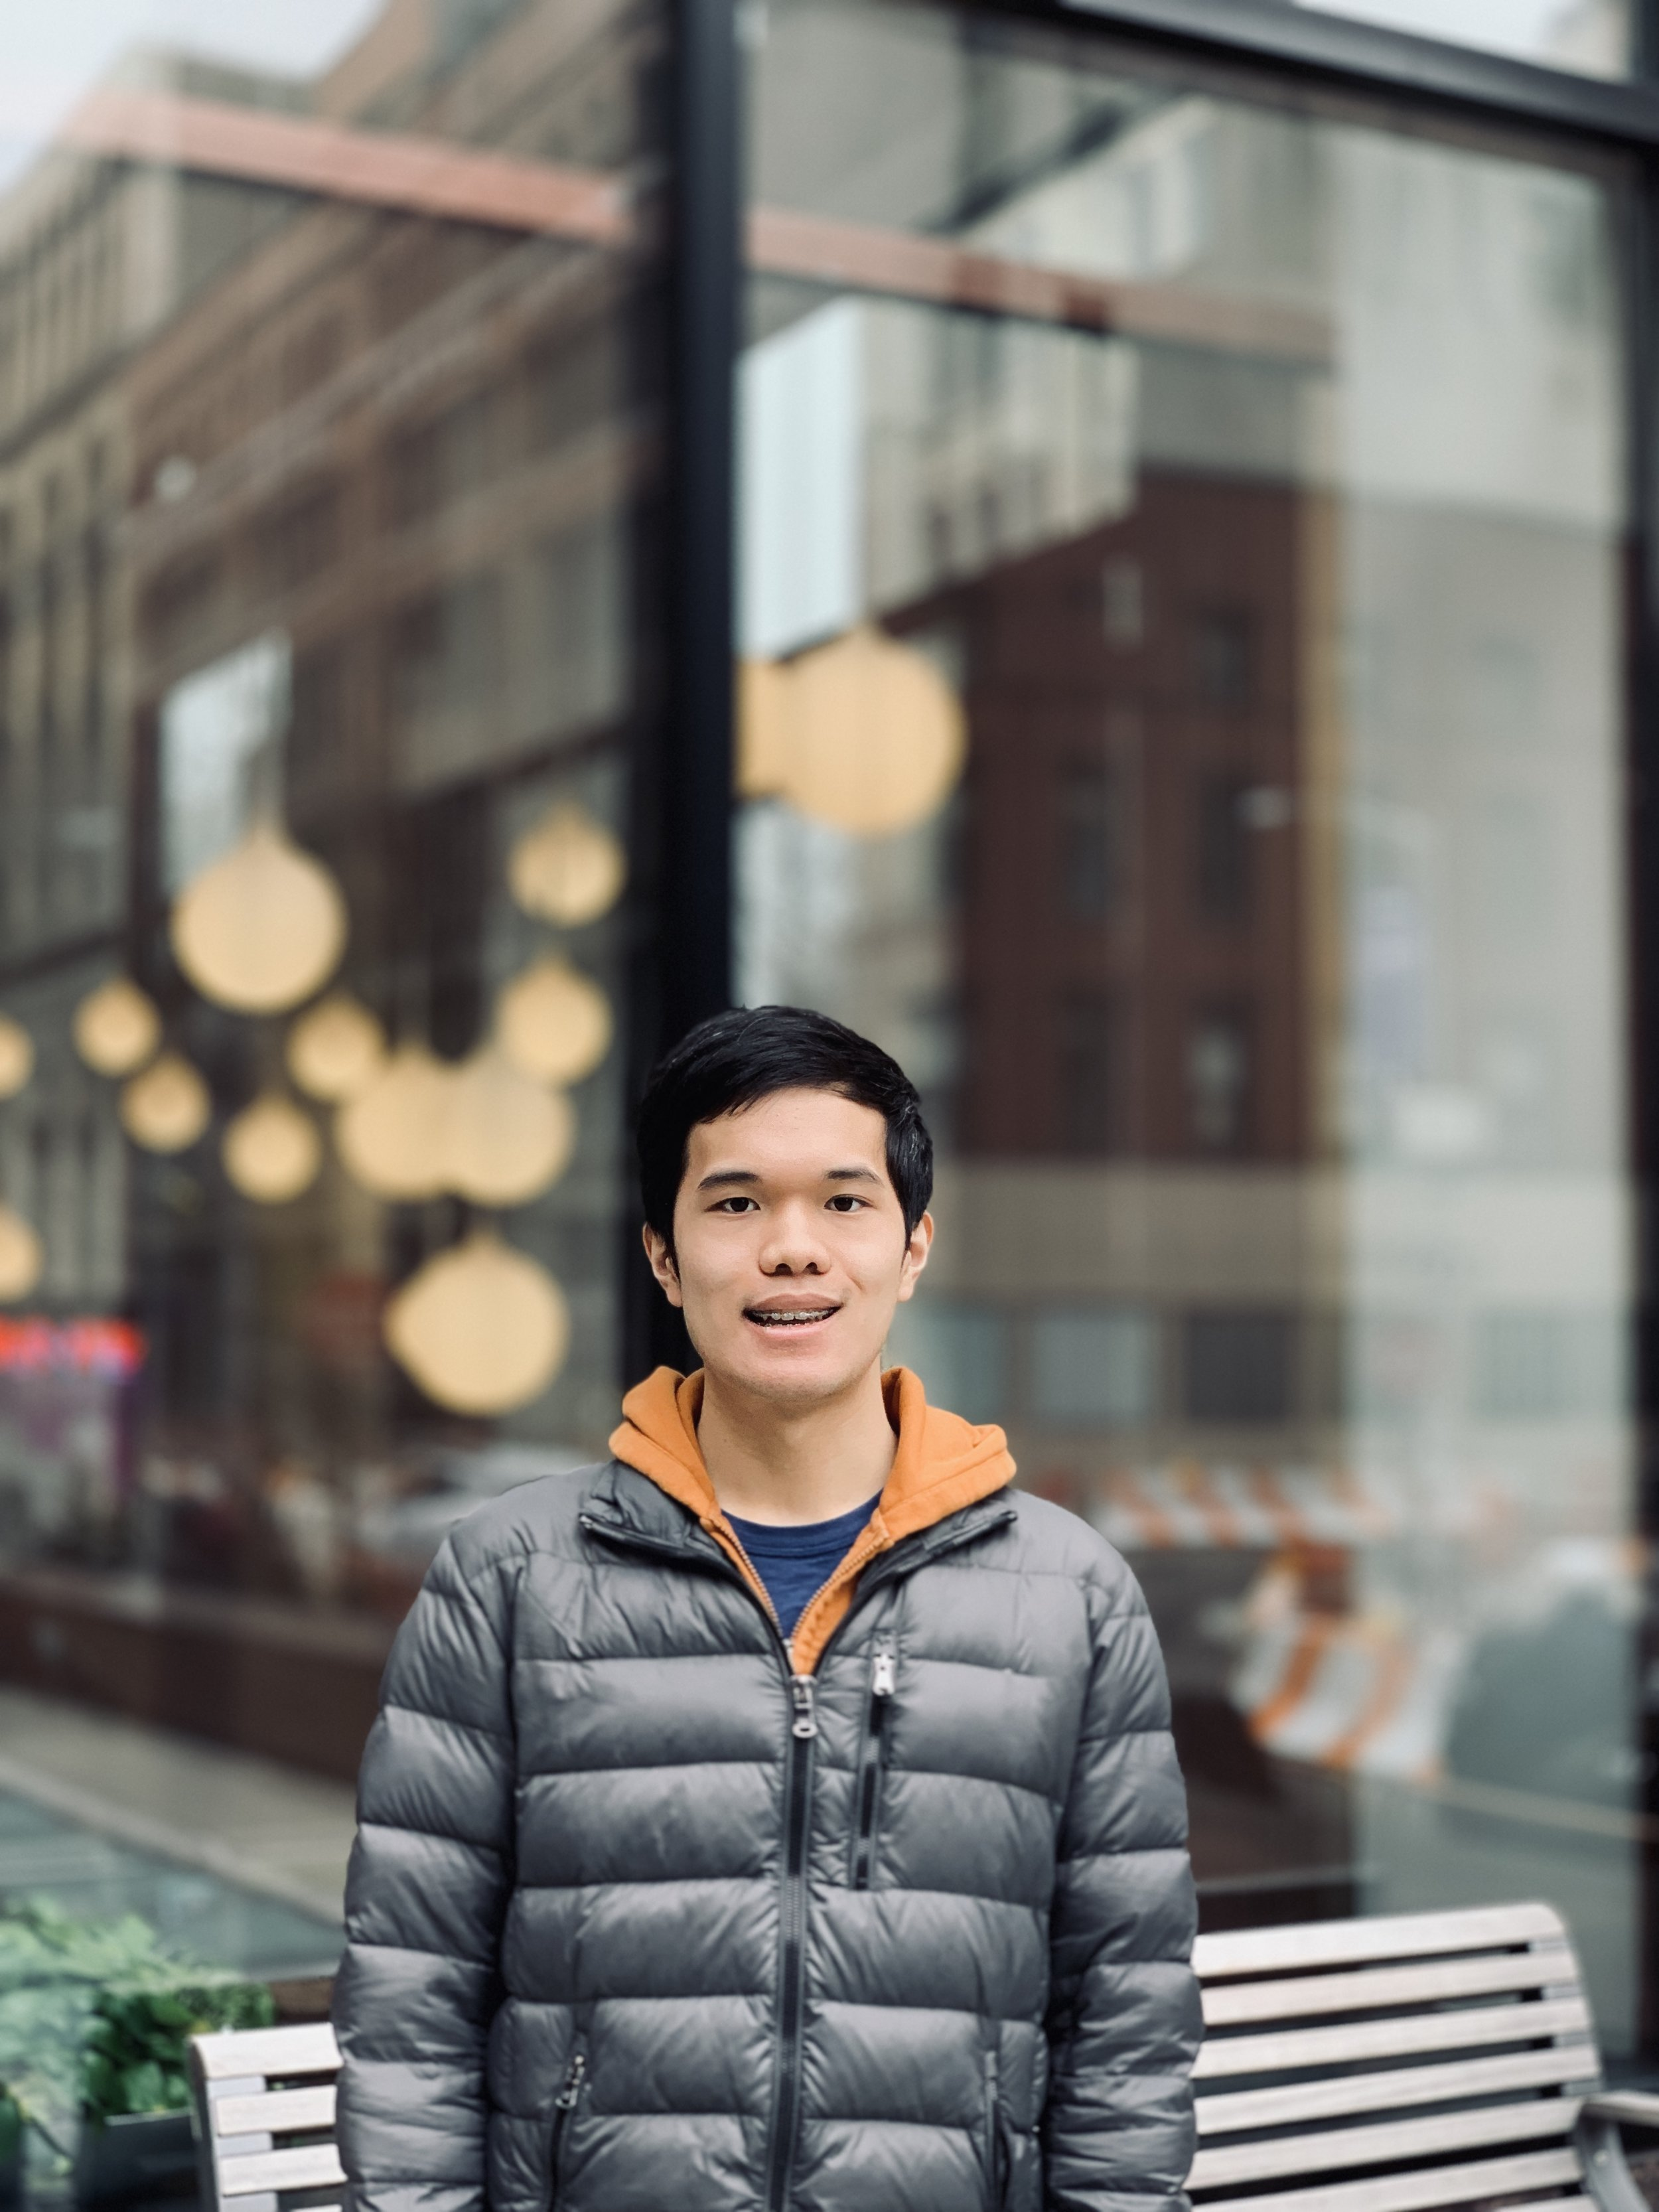 William Xu    Macro Analyst / Former Portfolio Manager   William is from Staten Island, New York and is studying Math and Finance. In his free time, he enjoys practicing kendo, playing video games, and exploring restaurants around New York City.